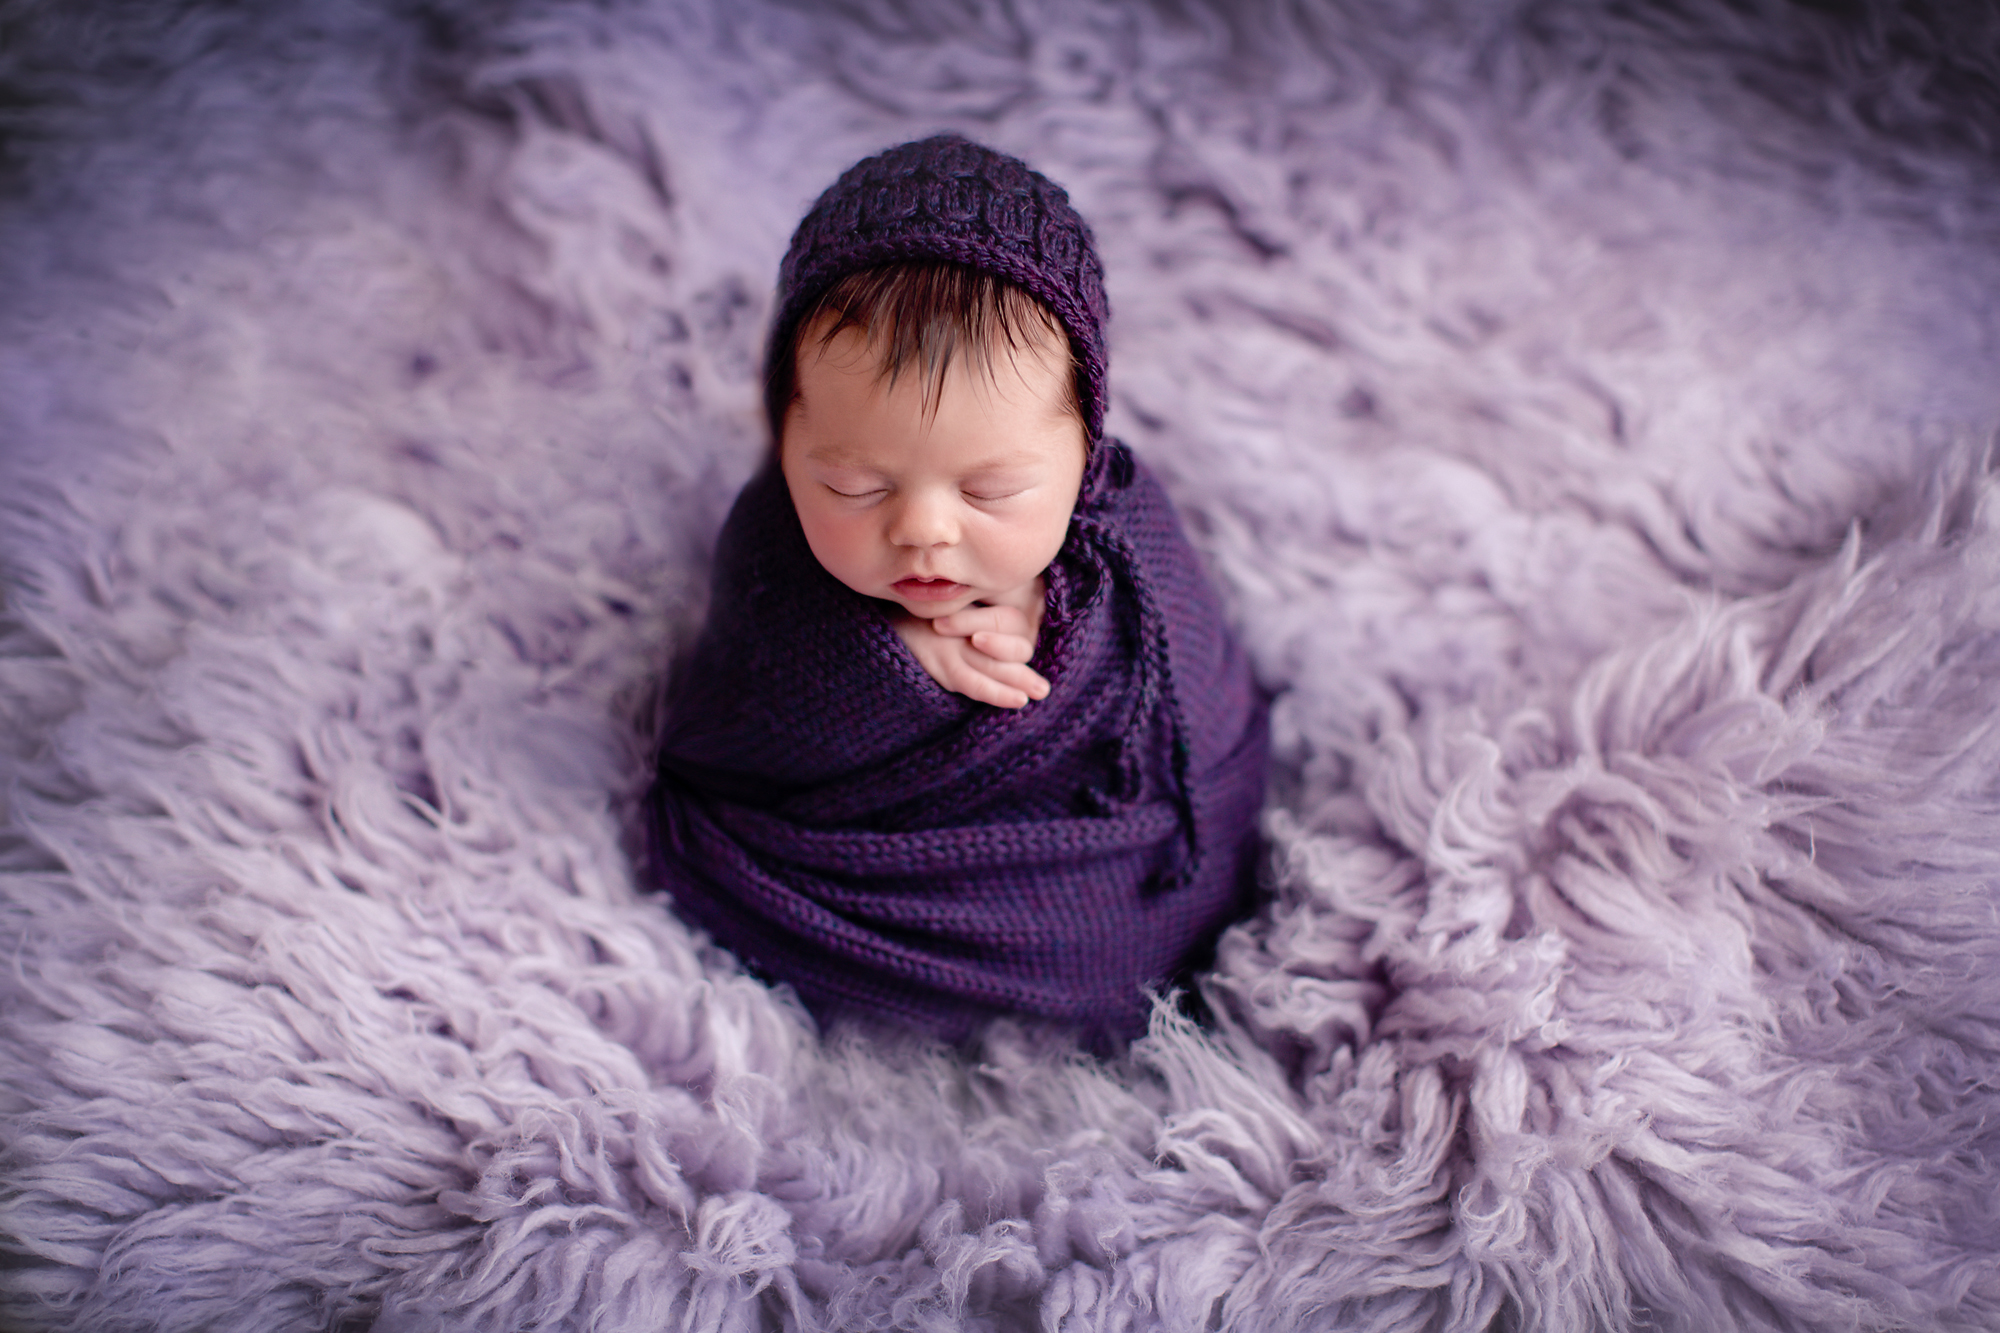 Potato sack pose. Newborn baby girl wrapped in purple wrap, wearing a purple hat and is posed on the lilac flokati rug.